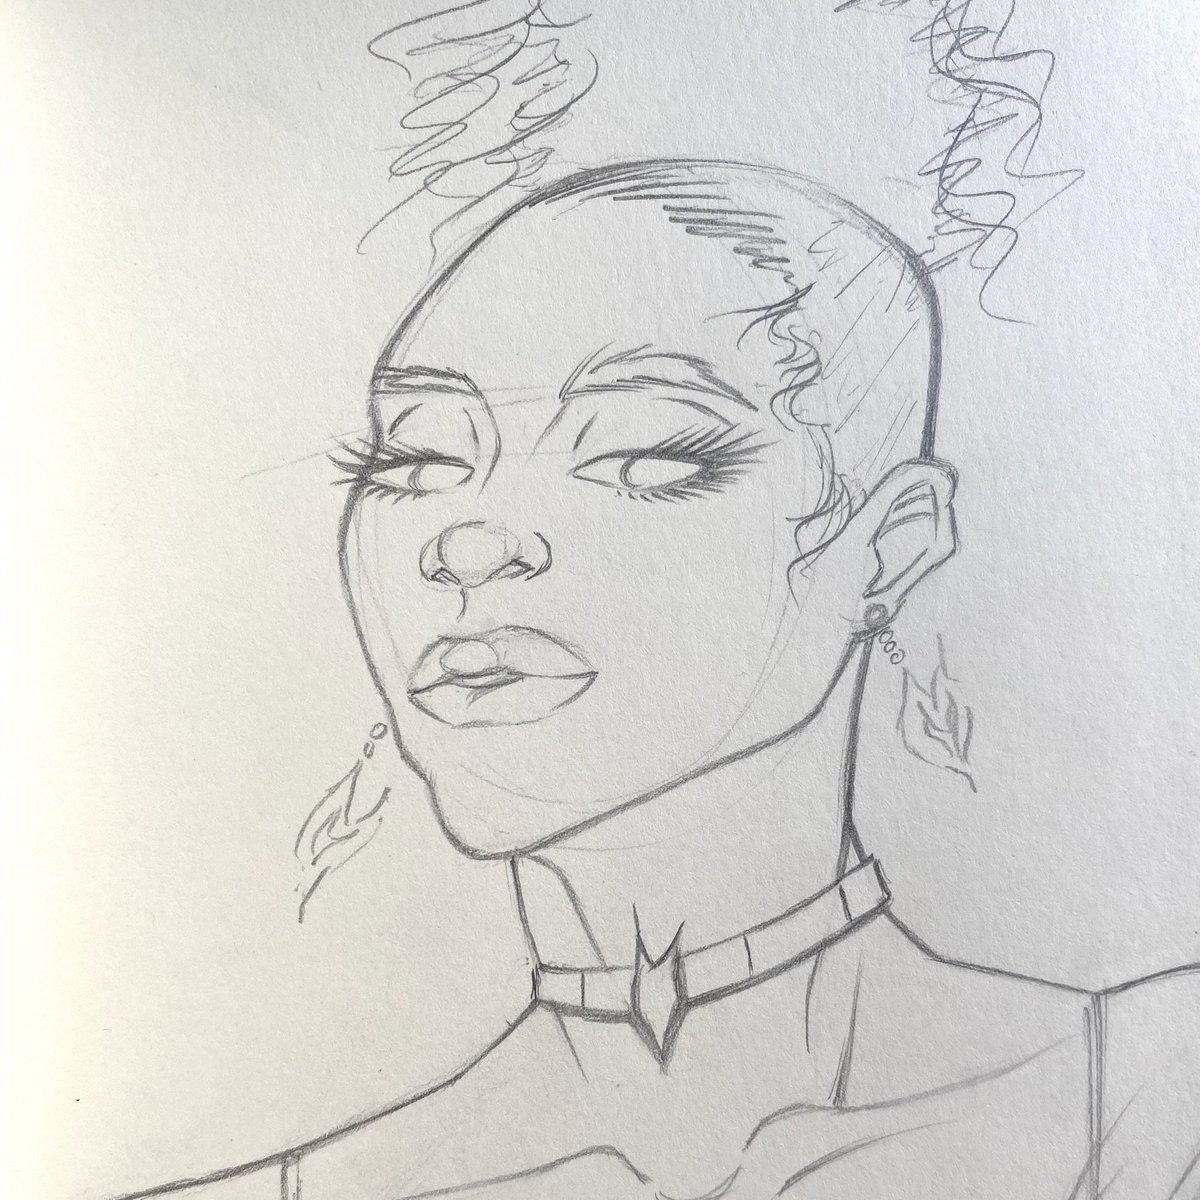 Waiting for new pens to come in the mail, so here's a quick character concept ✏️  Sketchbook portrait by me 2020  ——————————————————  #portrait #sketchbook #sketch #pencil #pencilsketch #drawing #drawingsketch #illustration #characterdesign #character #characterart https://t.co/wU4vEAlVi4